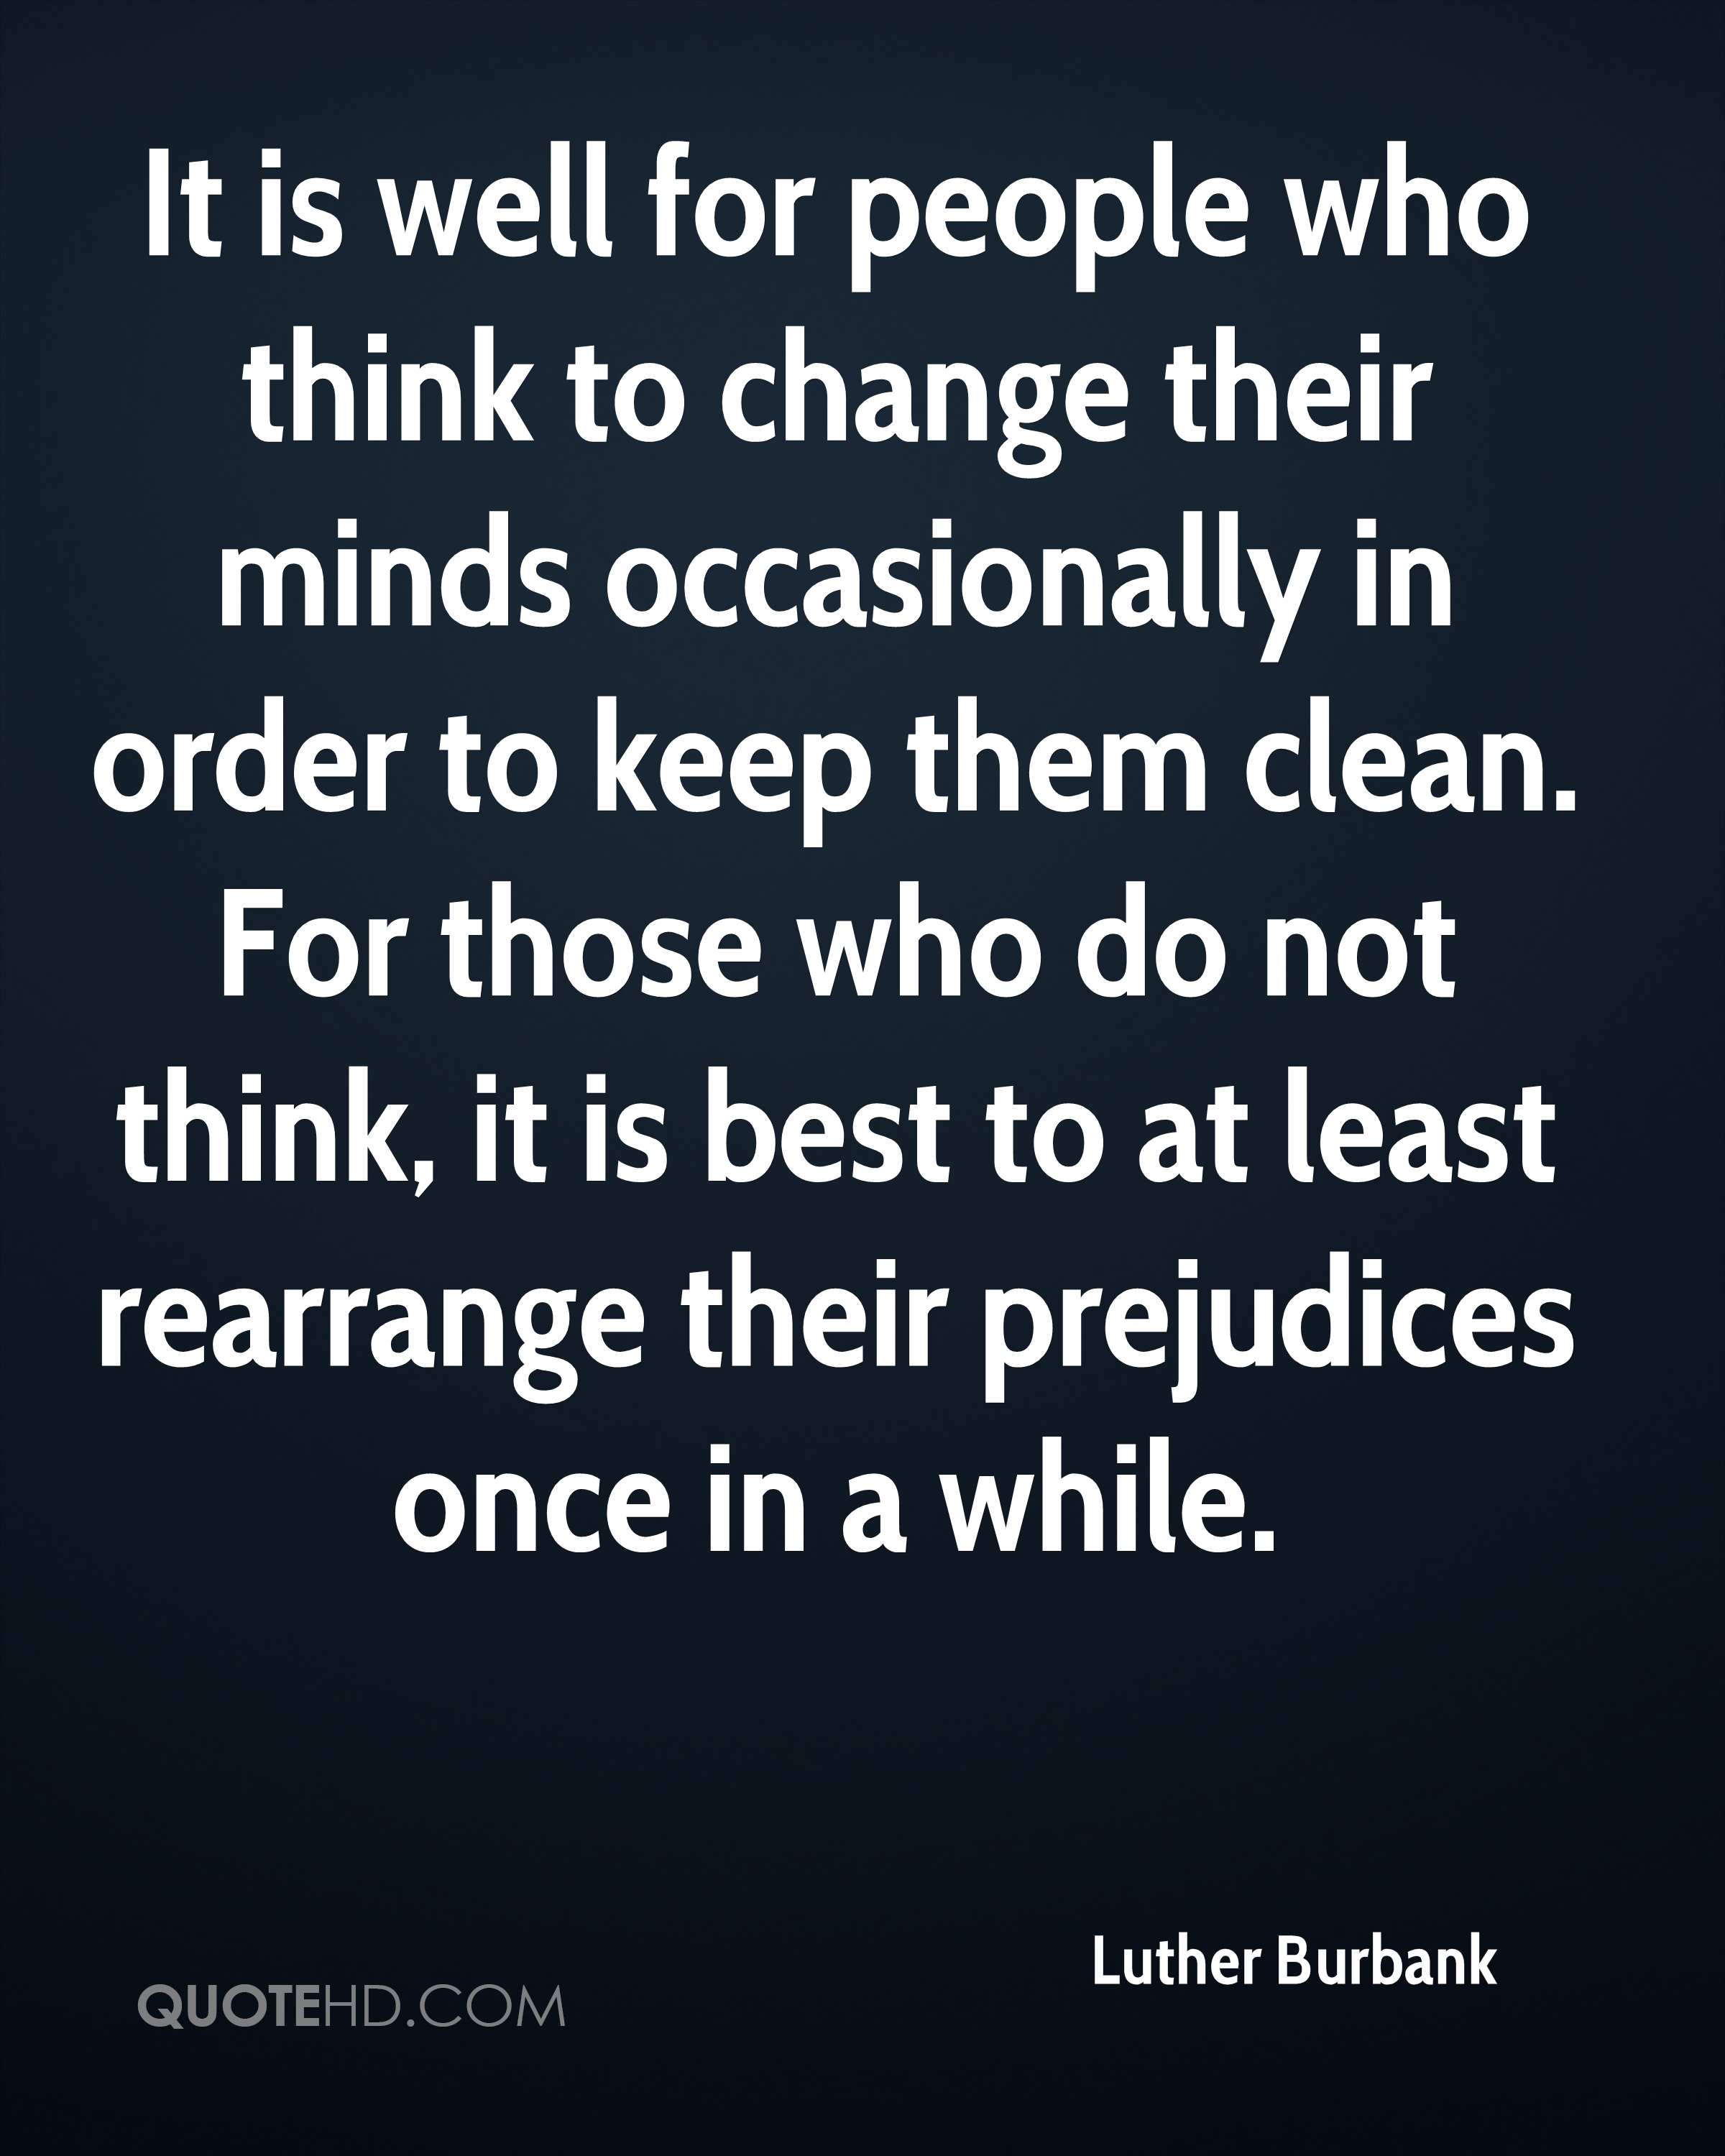 It is well for people who think to change their minds occasionally in order to keep them clean. For those who do not think, it is best to at least rearrange their prejudices once in a while.